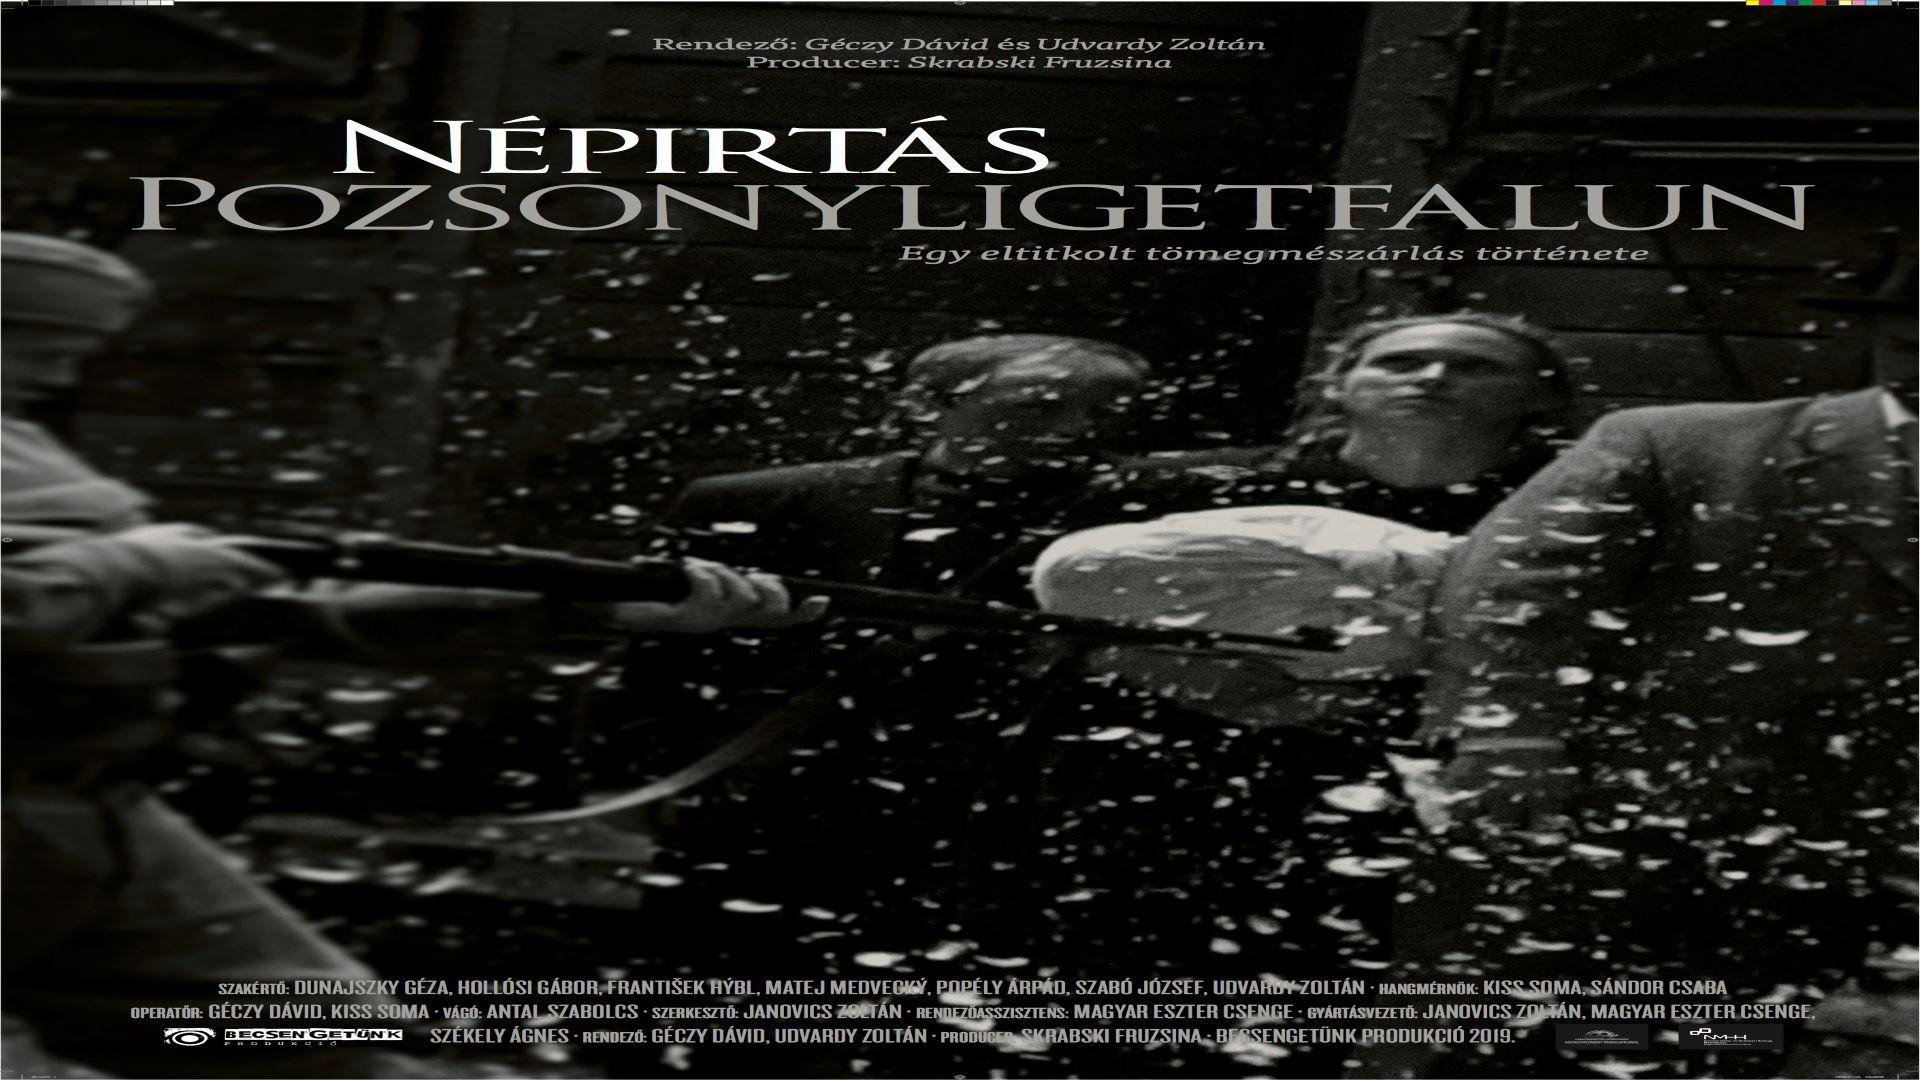 GENOCIDE IN POZSONYLIGETFALU/PETRZALKA     (to play film click circle button to the right. To add to watchlist, click + button below it)